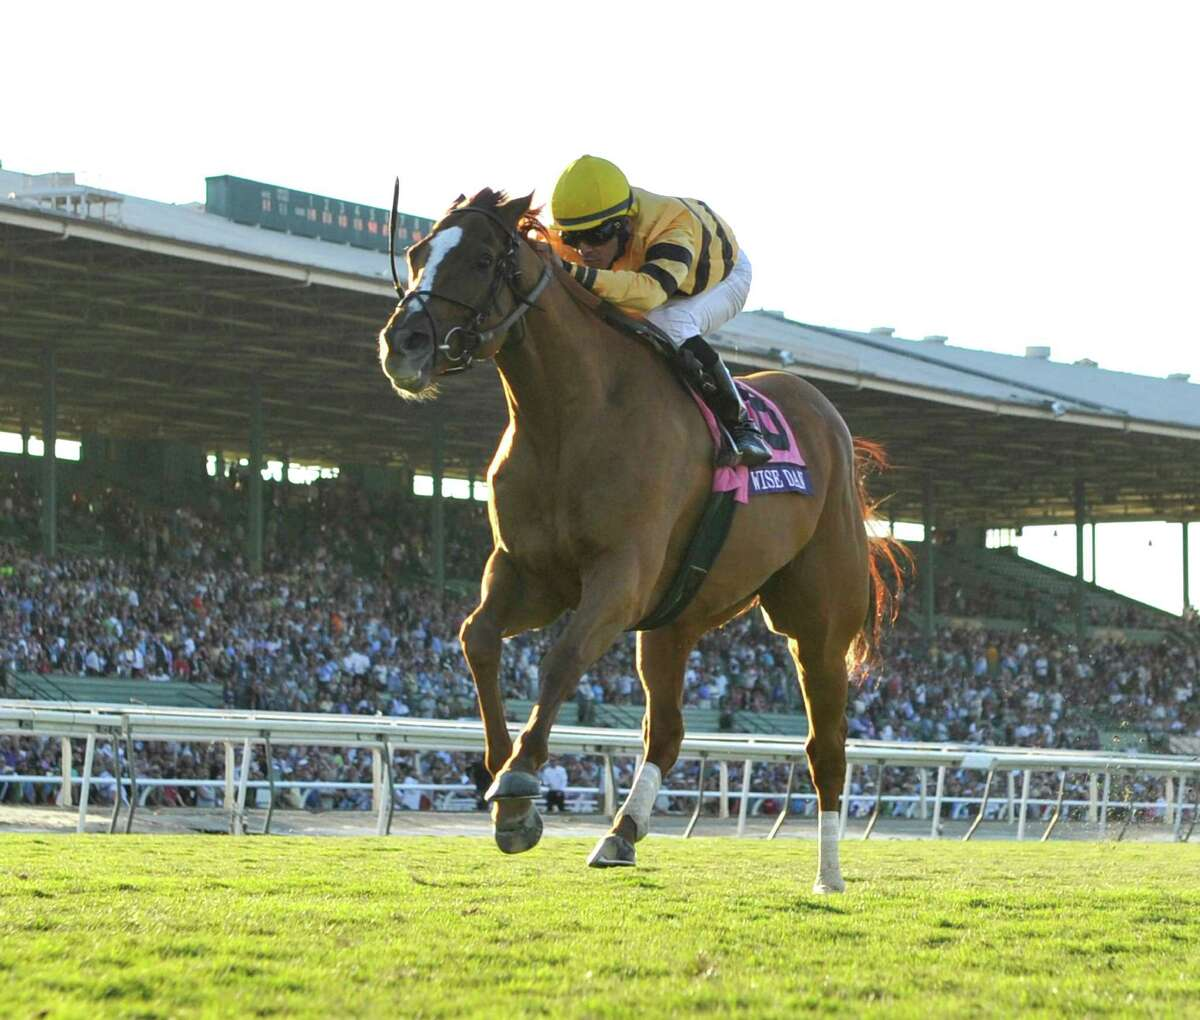 Jose Lezcano guides Wise Dan to a second consecutive win in the to win the 30th running of The Breeders' Cup Mile Nov. 2, 2013 at Santa Anita Park in Arcadia, California. (Skip Dickstein/Times Union